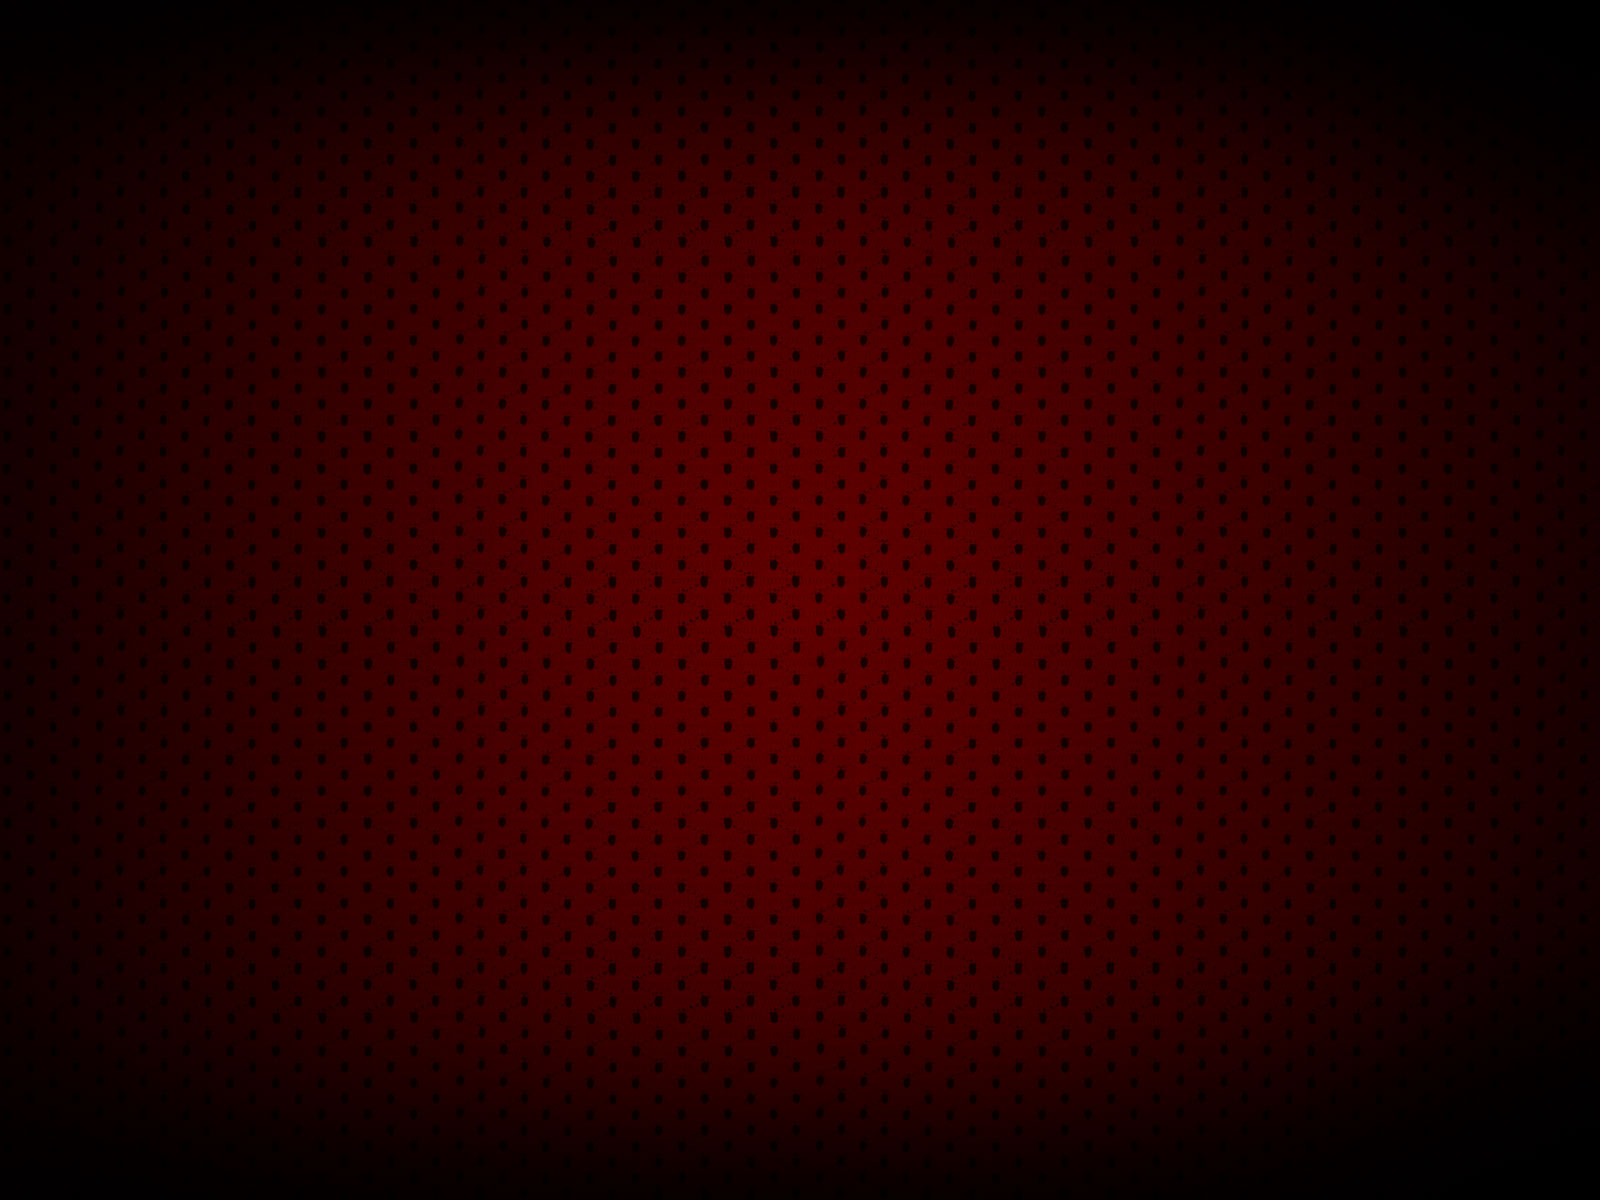 Free Download Burgundy And Black Background Pictures To Pin